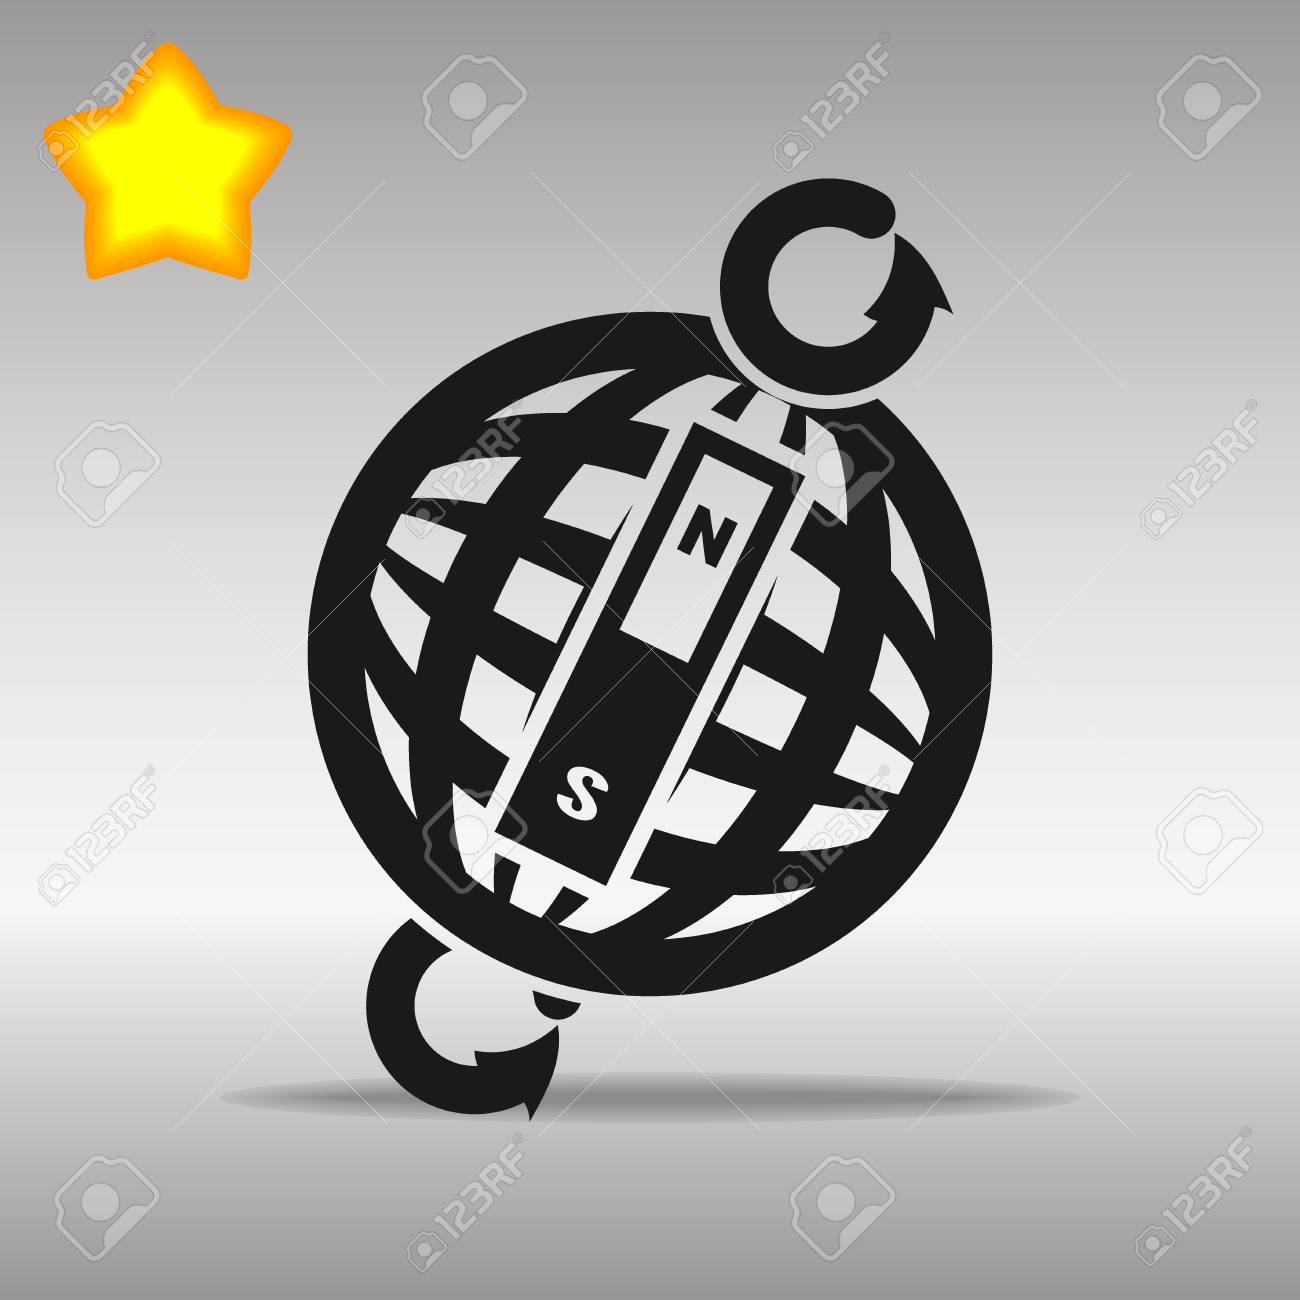 compass black con button logo symbol concept high quality on the gray background - 82176381